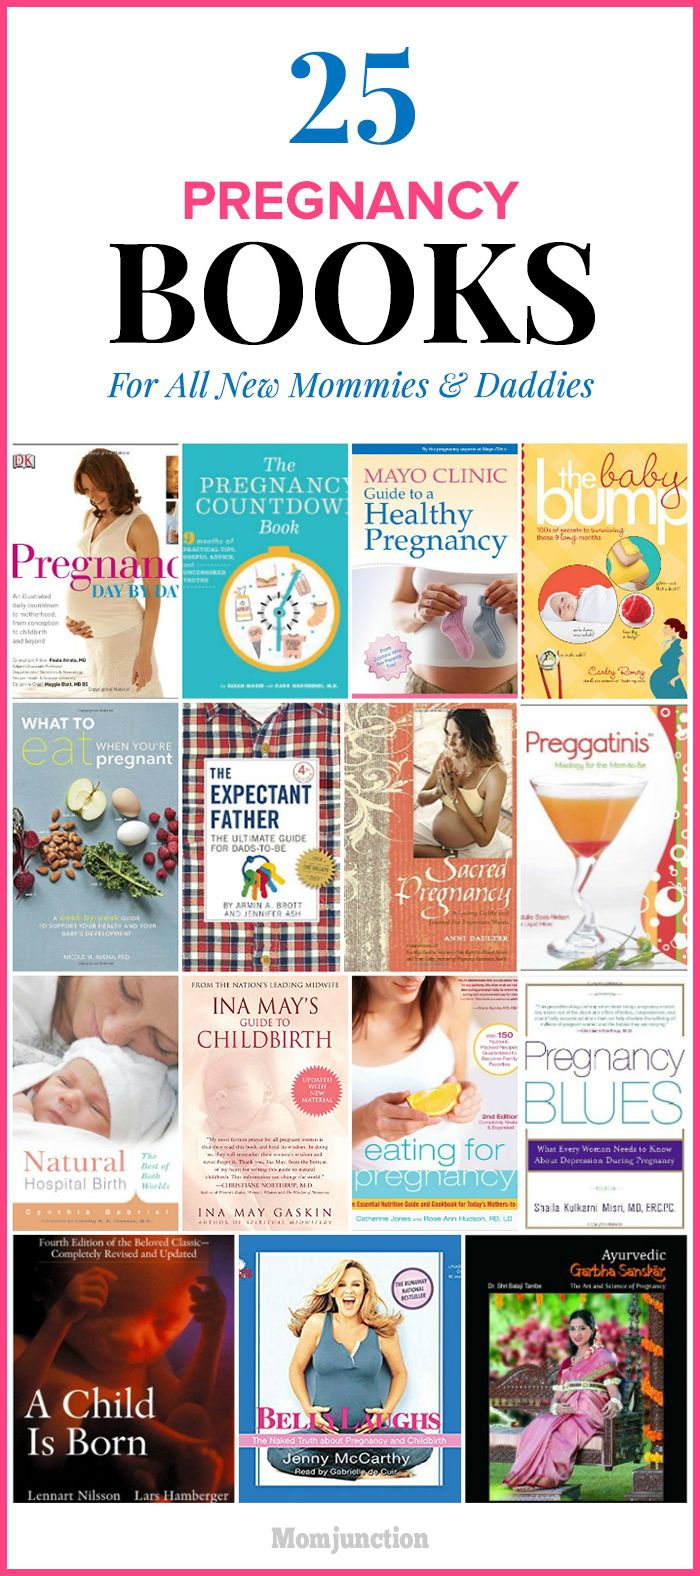 Are you expecting? Wondering which books to read during pregnancy? Check out our list of top pregnancy books that might serve your need of the hour.